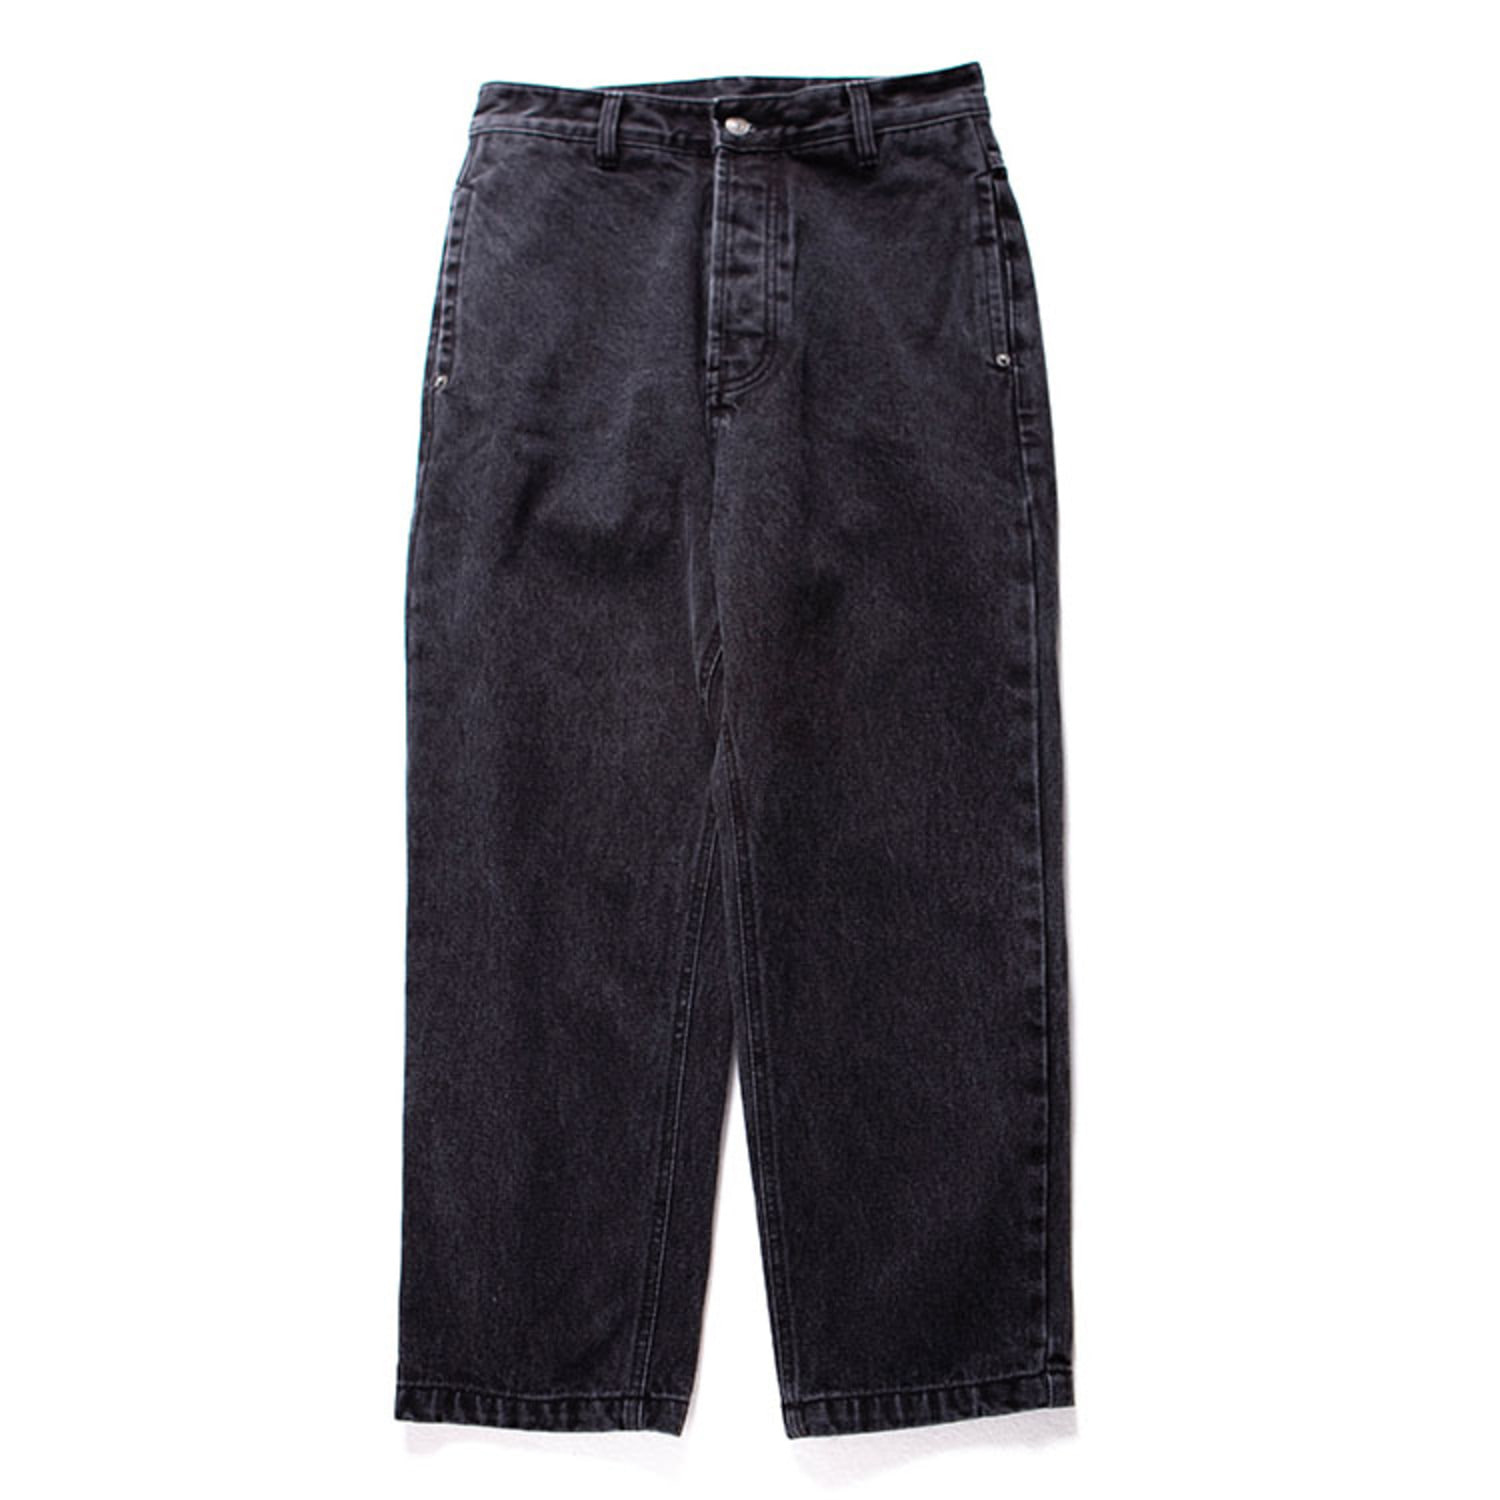 Wased Denim 02 (Washed Black)